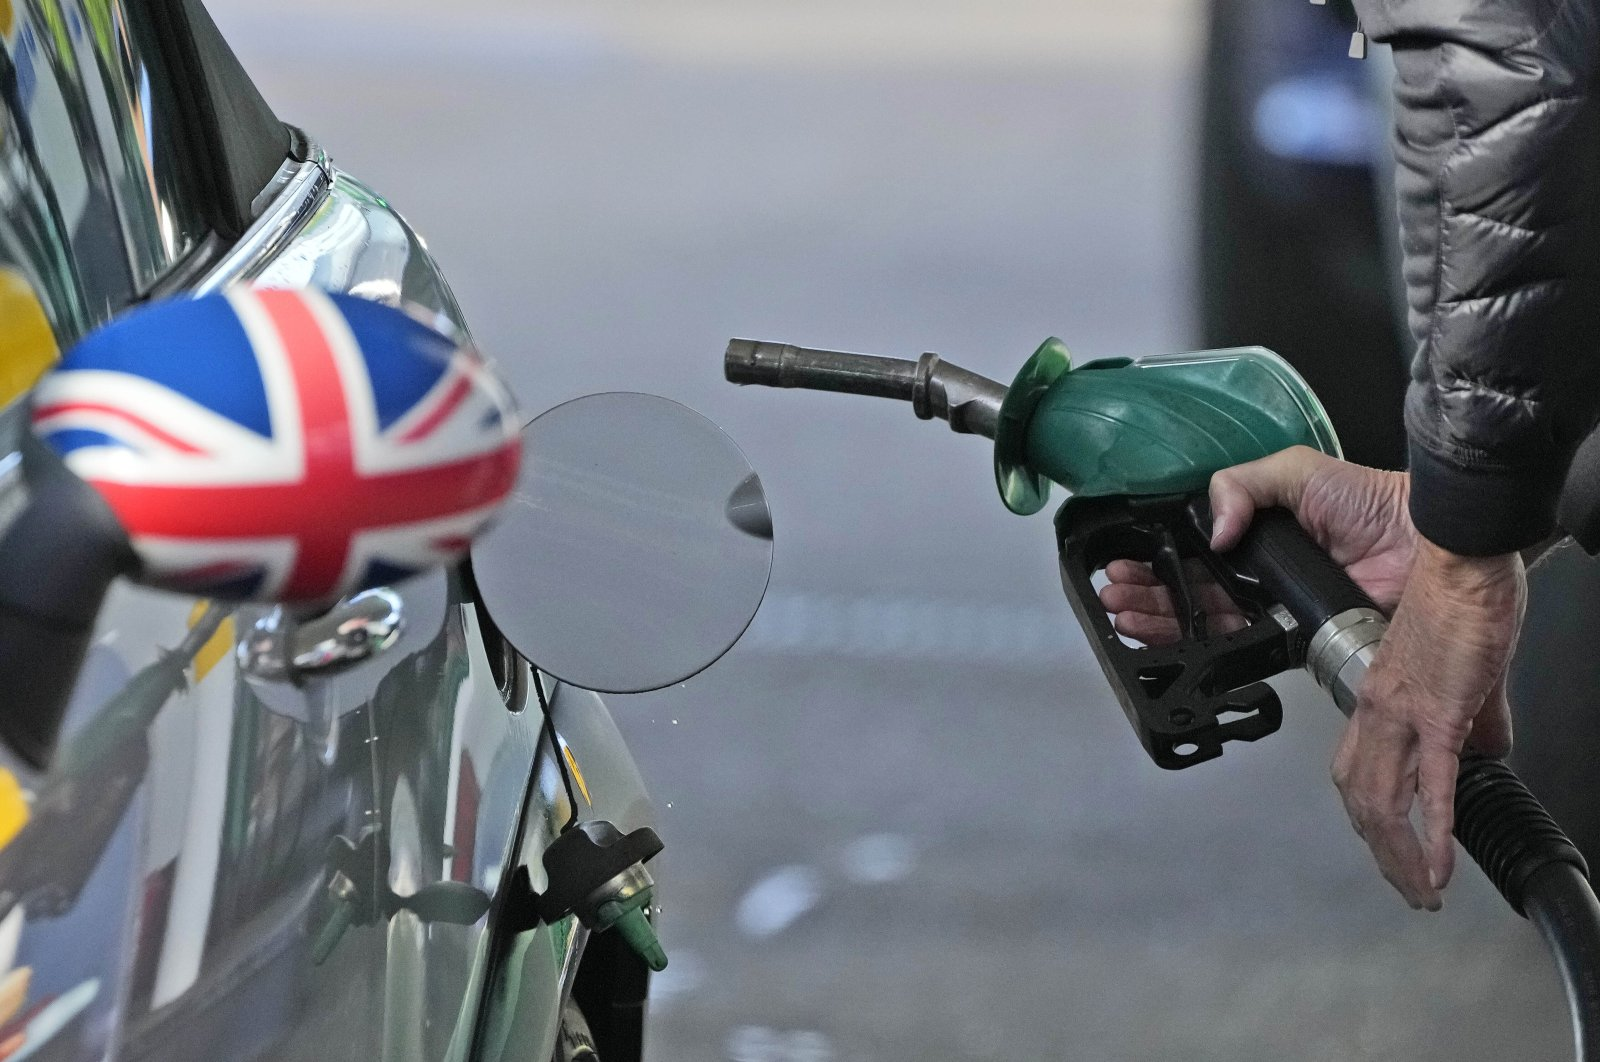 A driver fills a car with fuel at a gas station in London, Sept. 29, 2021. (AP Photo)